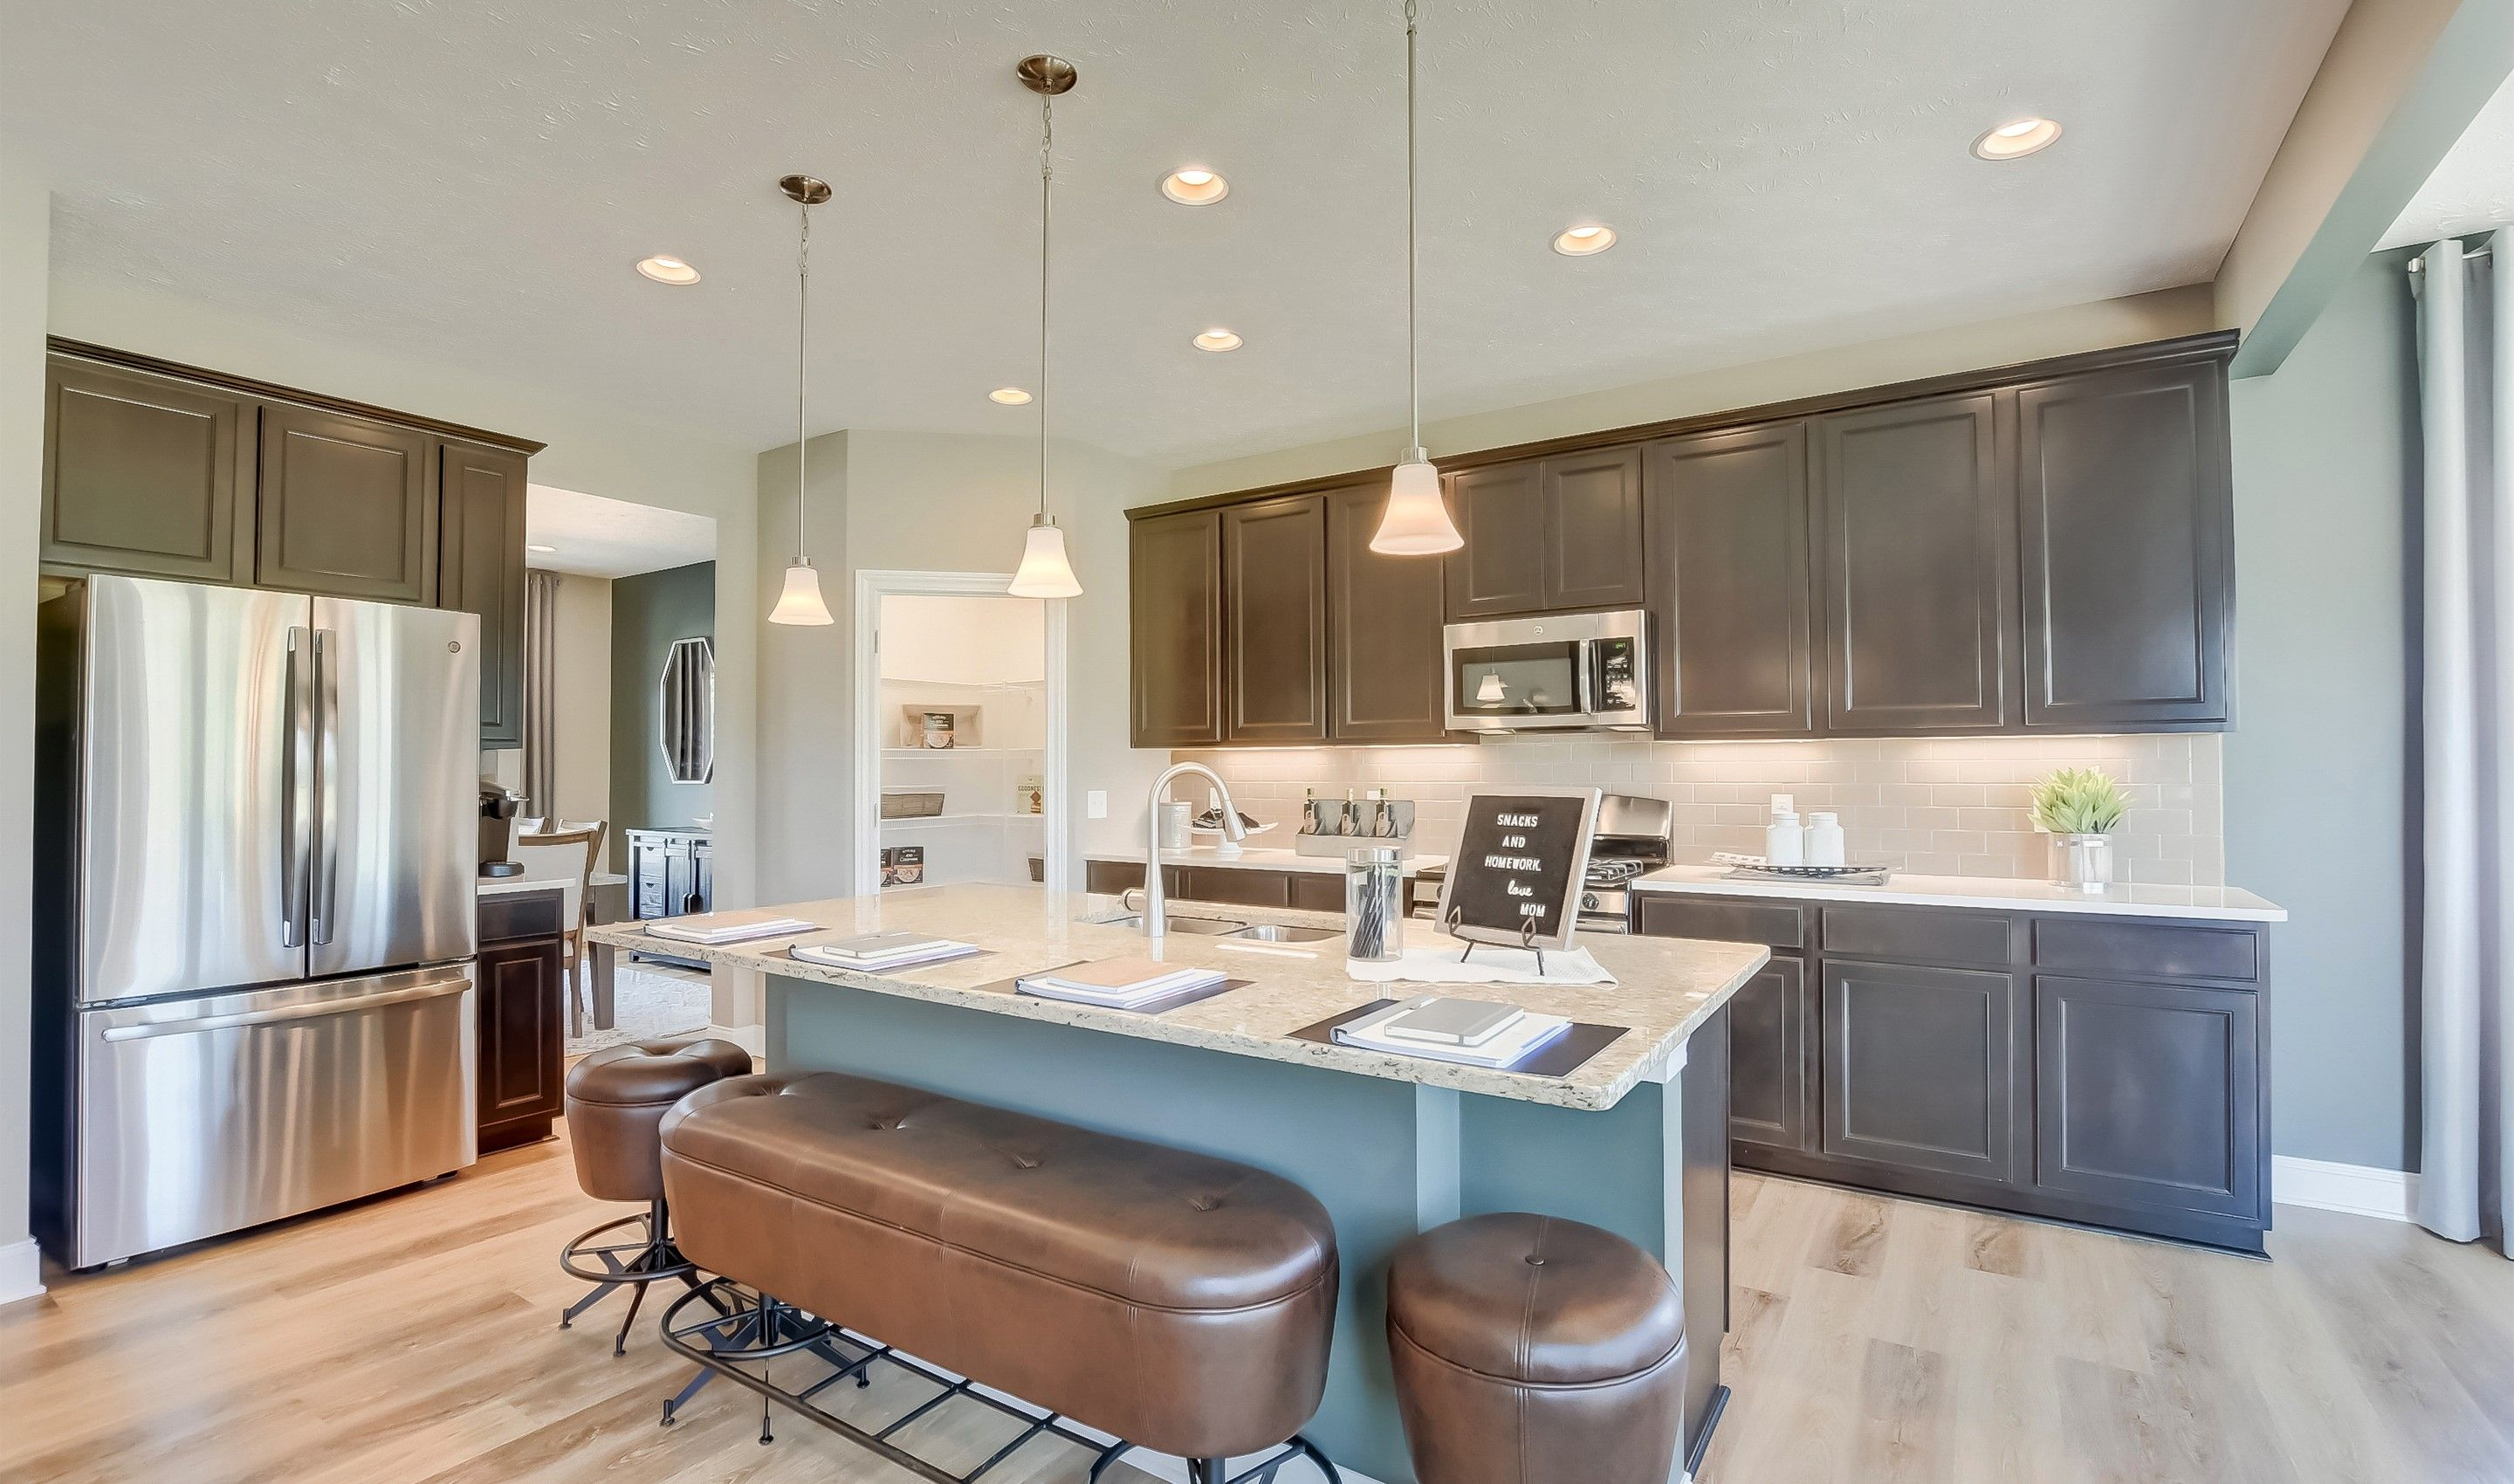 Kitchen featured in the Waterford II By K. Hovnanian® Homes in Cleveland, OH